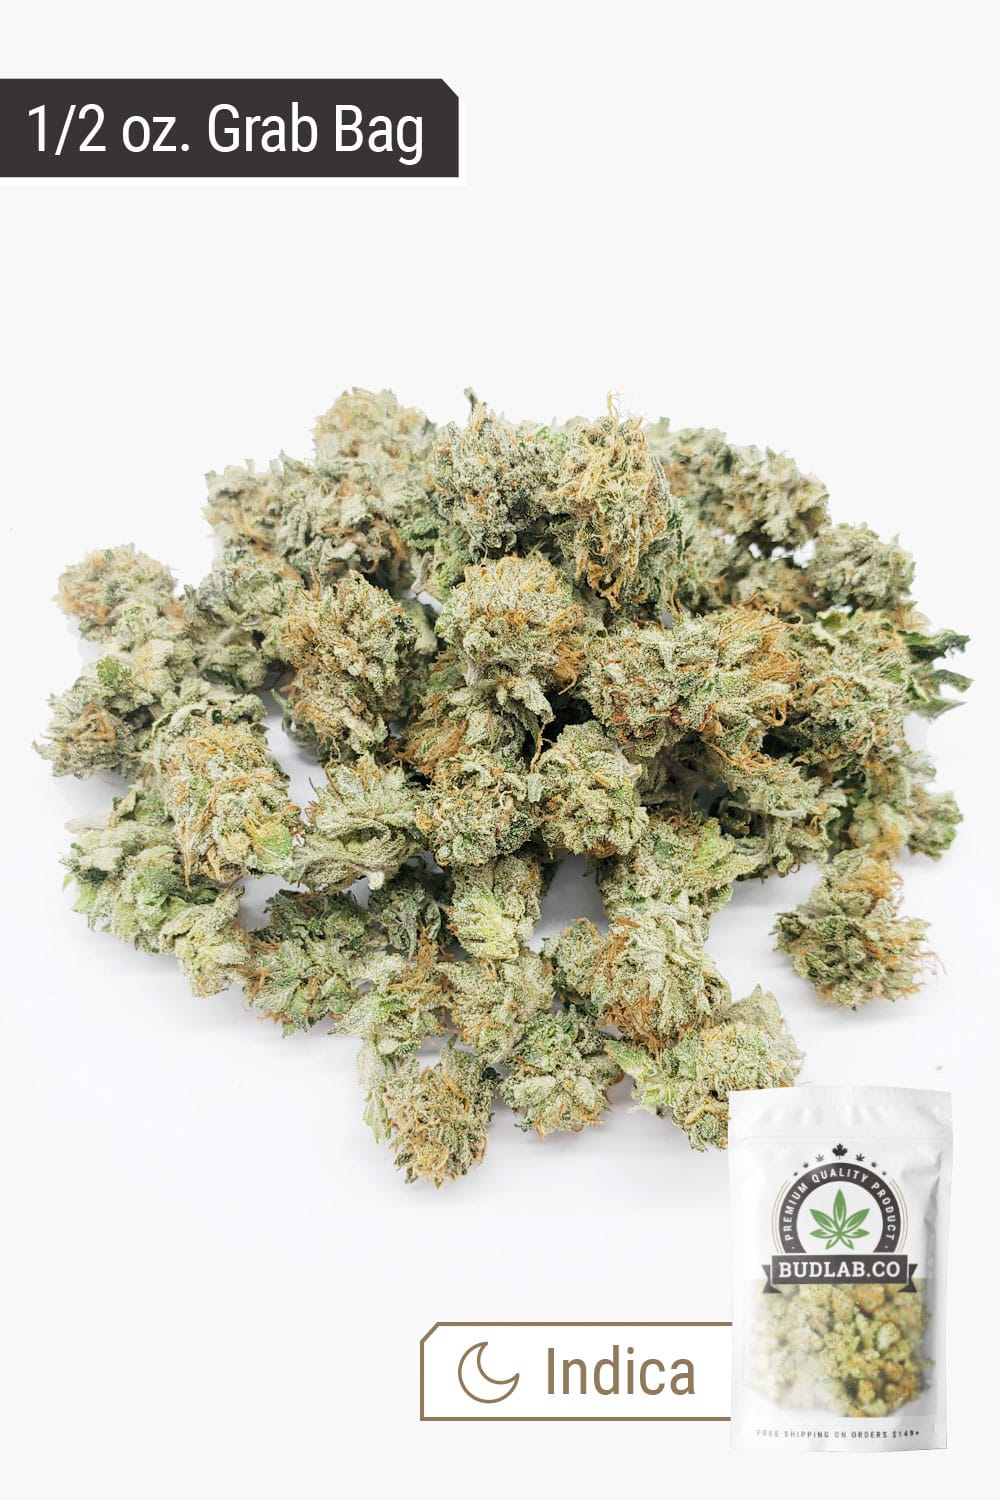 Death Bubba Indica AA Small Buds Grab Bag 2